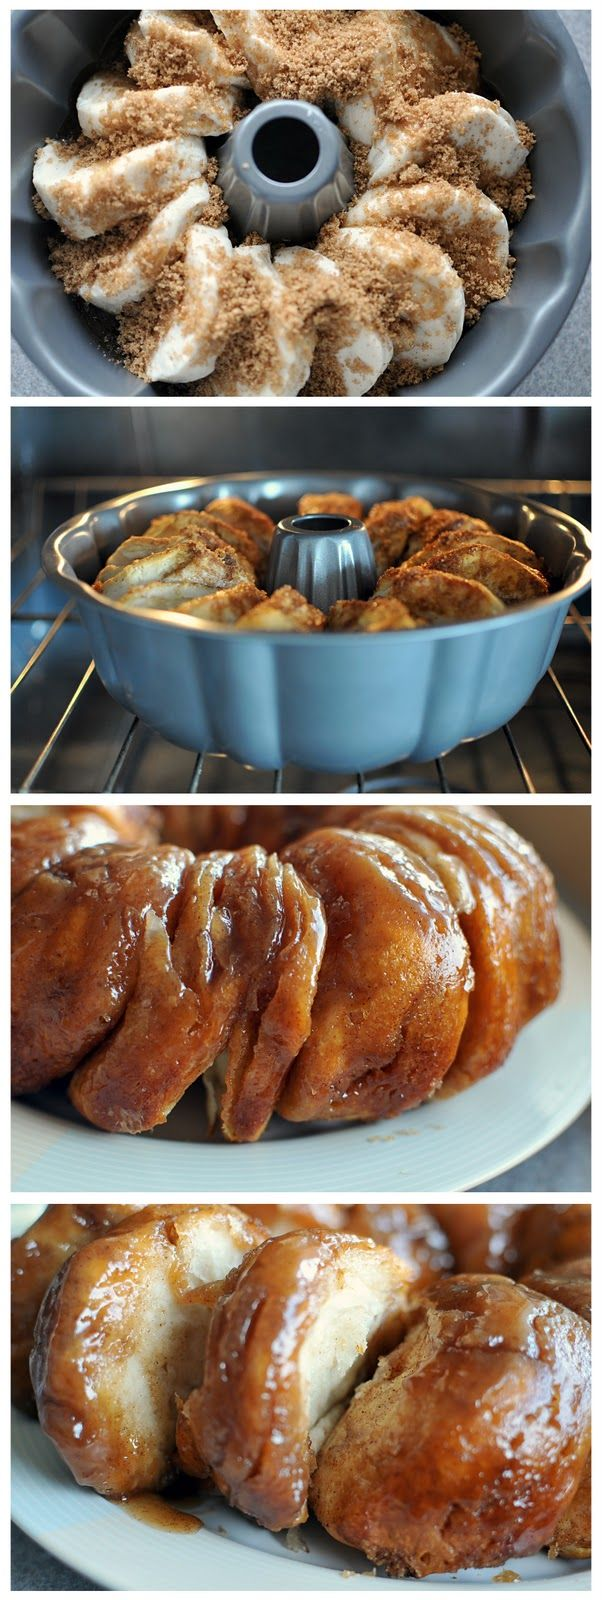 Sticky Bun Breakfast Ring: Buttermilk Biscuits, Recipe, Breakfast Rings, Bundt Pan, Biscuits Cinnamon Rolls, Monkey Breads, Christmas Mornings, Sticky Buns, Buns Breakfast